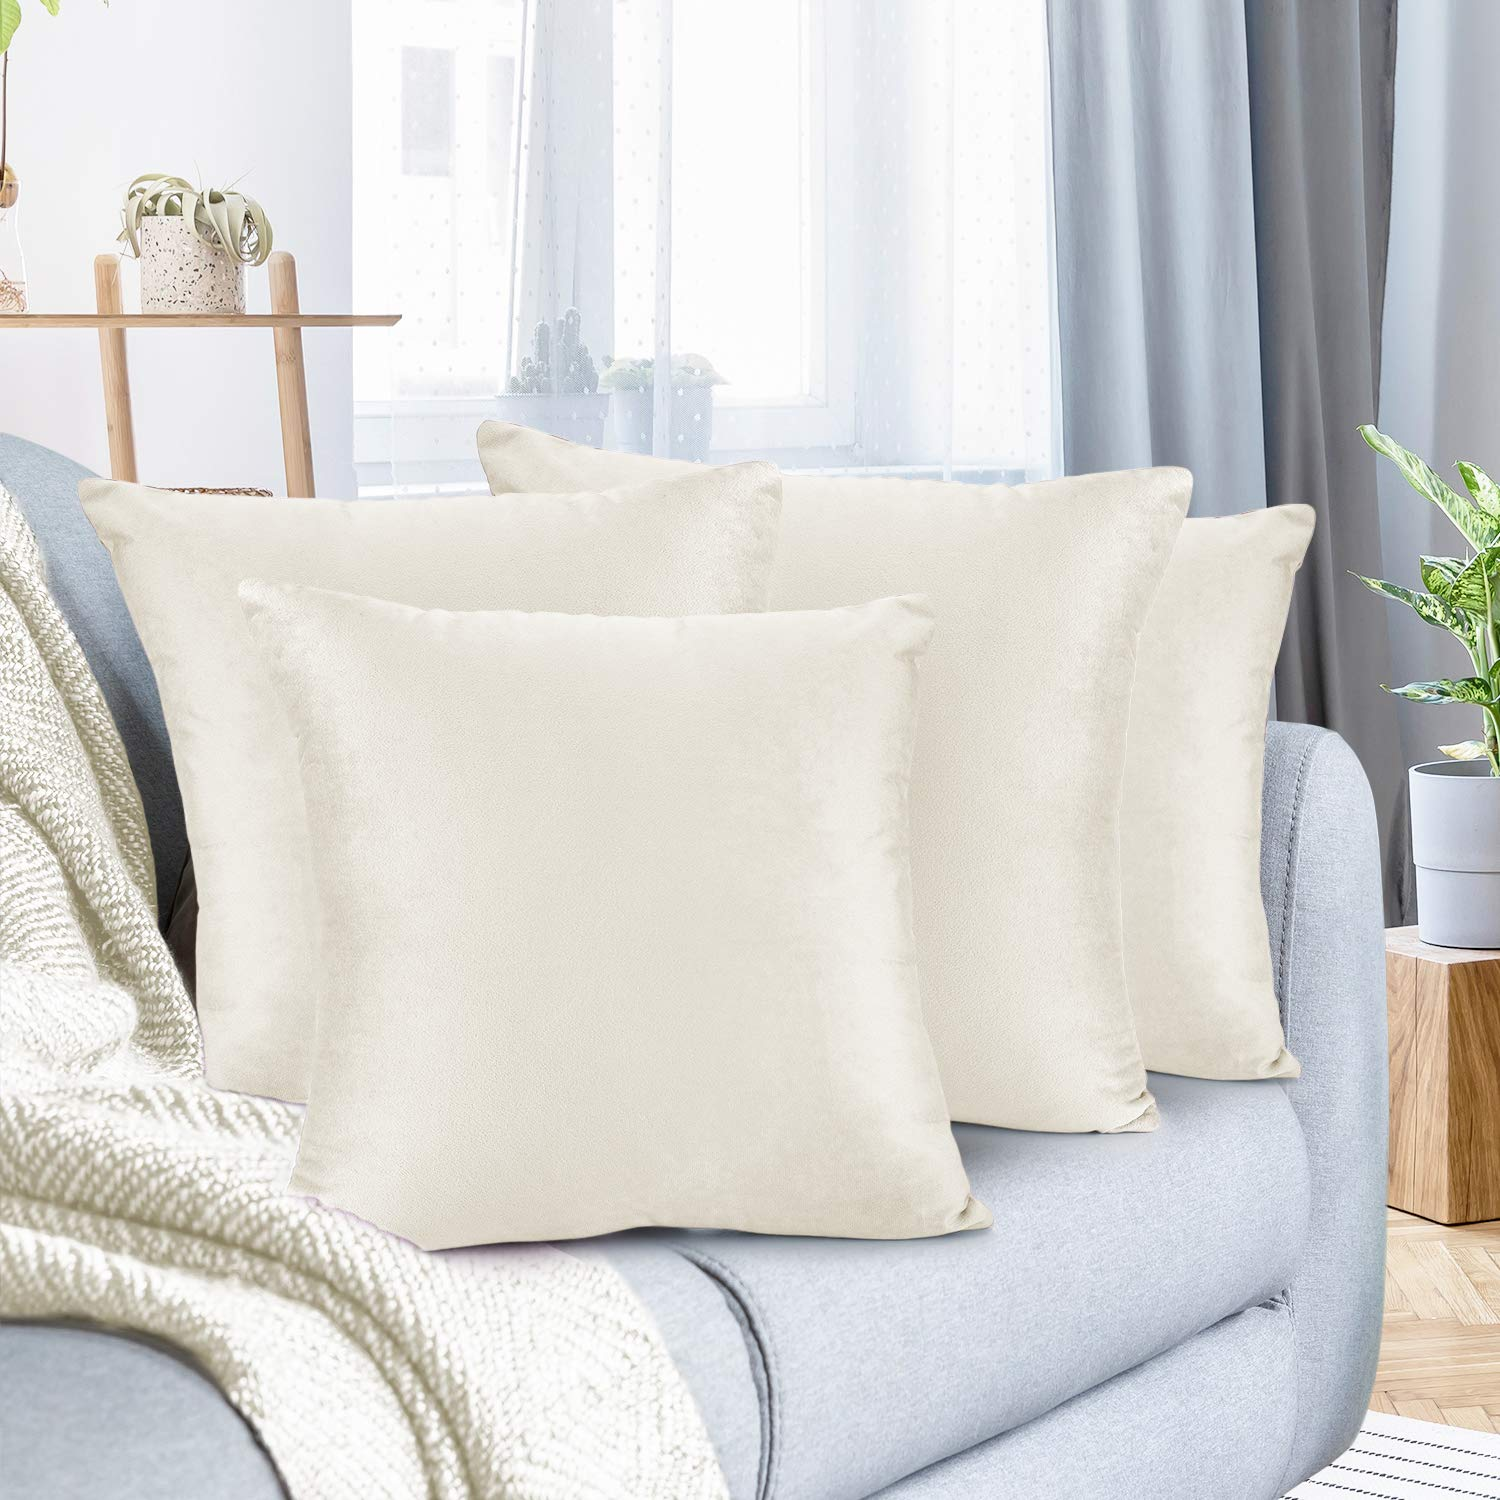 """Nestl Bedding Throw Pillow Cover 18"""" x 18"""" Soft Square Decorative Throw Pillow Covers Cozy Velvet Cushion Case for Sofa Couch Bedroom, Set of 4, Off White"""